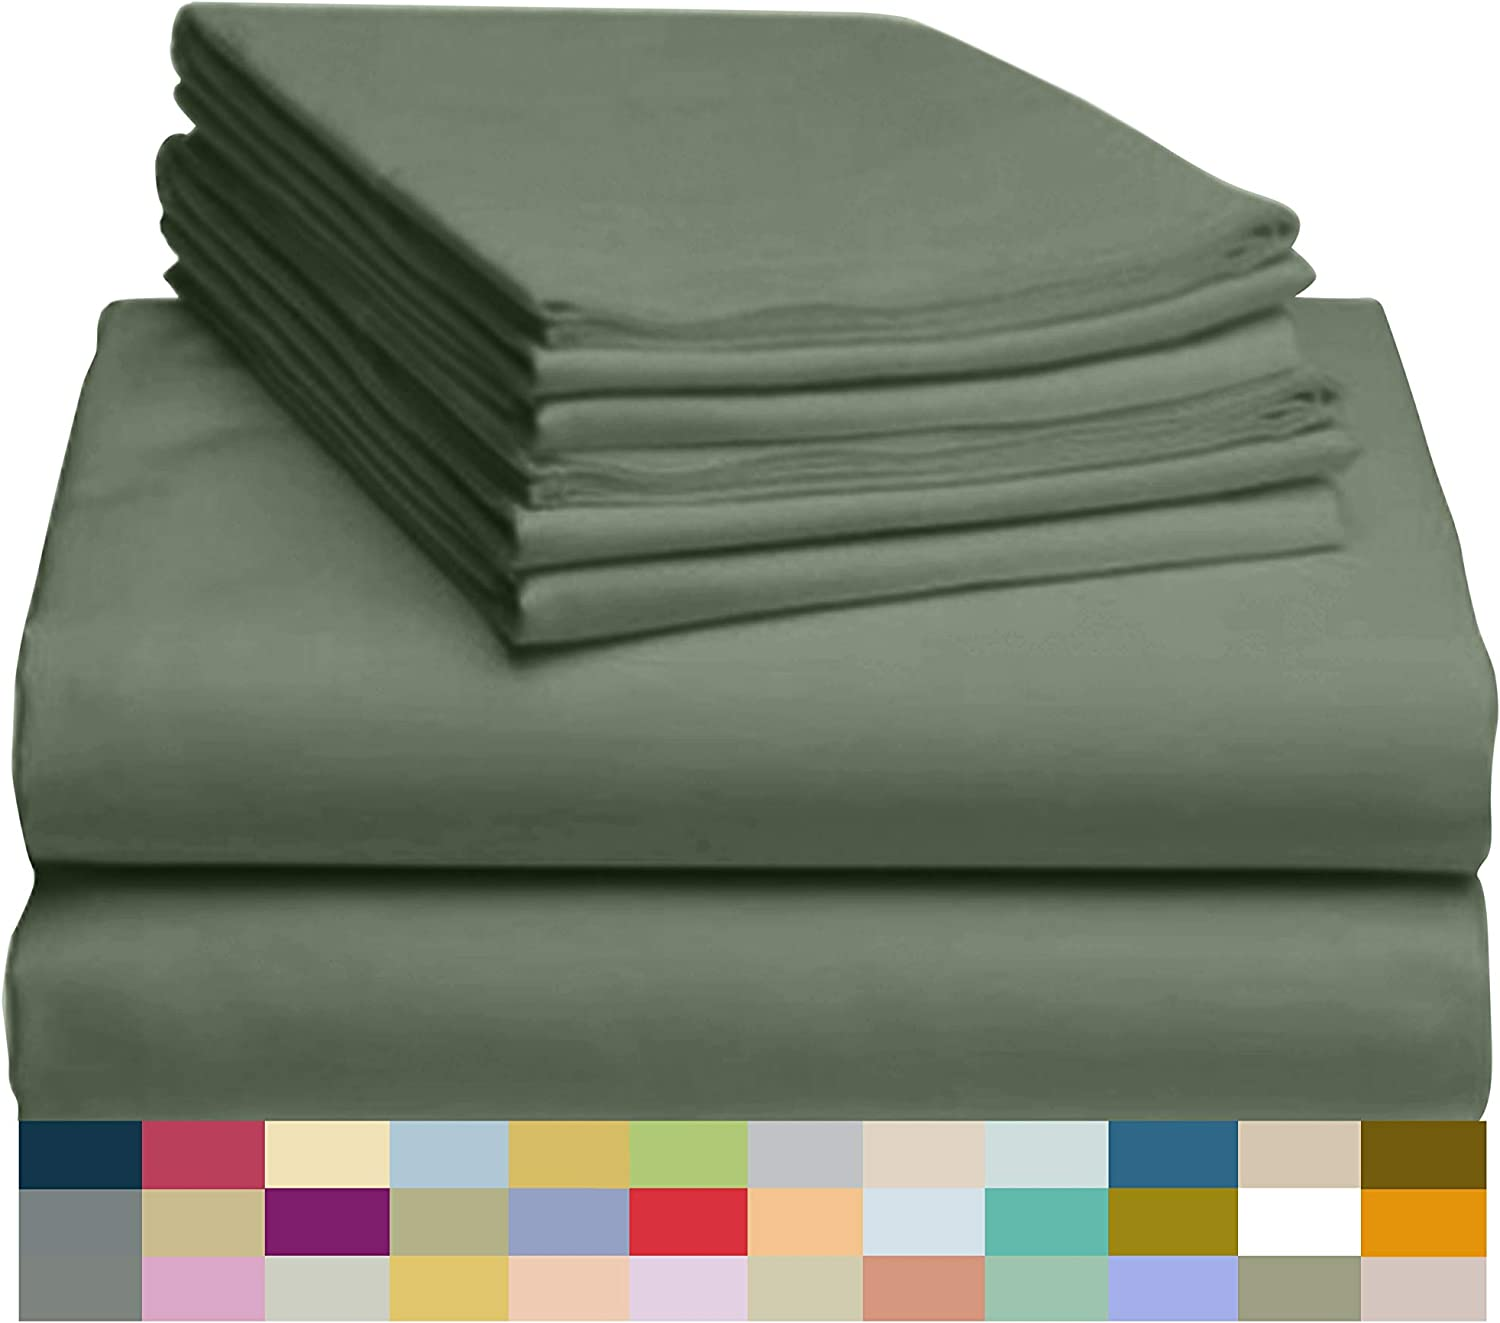 """LuxClub 6 PC Sheet Set Bamboo Sheets Deep Pockets 18"""" Eco Friendly Wrinkle Free Sheets Hypoallergenic Anti-Bacteria Machine Washable Hotel Bedding Silky Soft - Tree Moss Green Queen"""